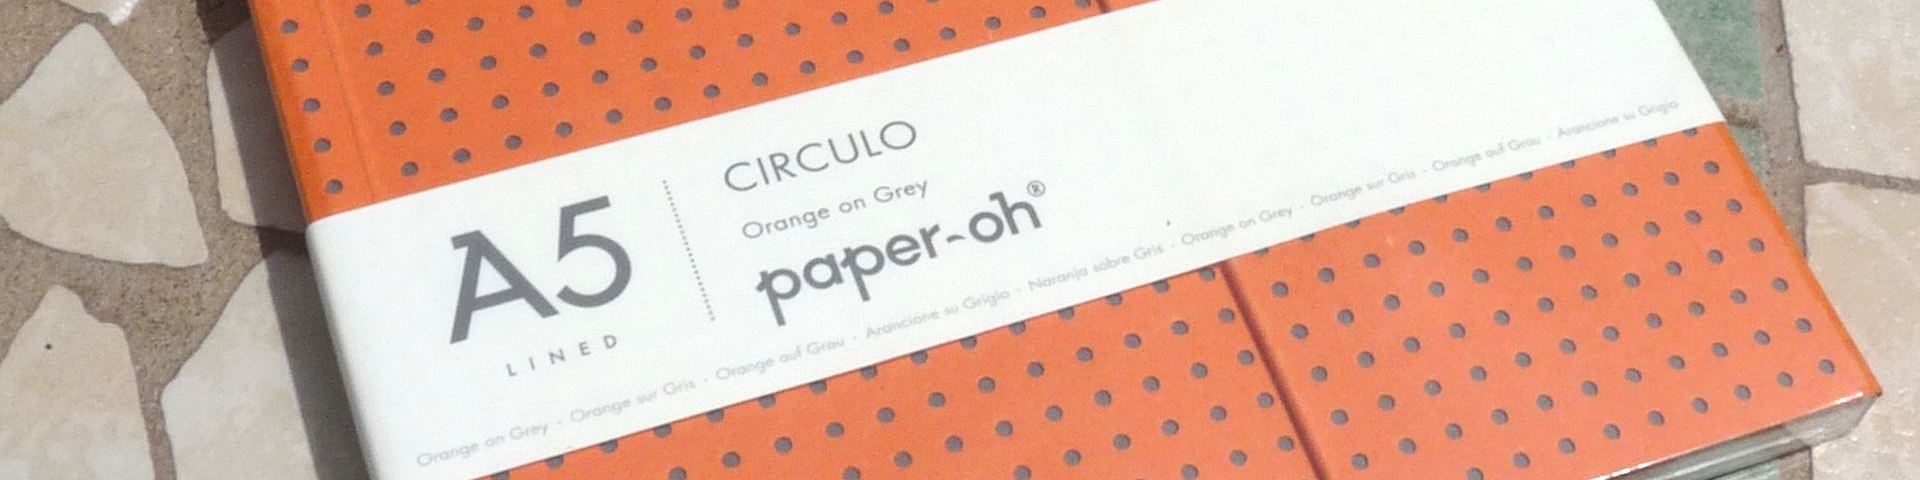 Paper-Oh featured